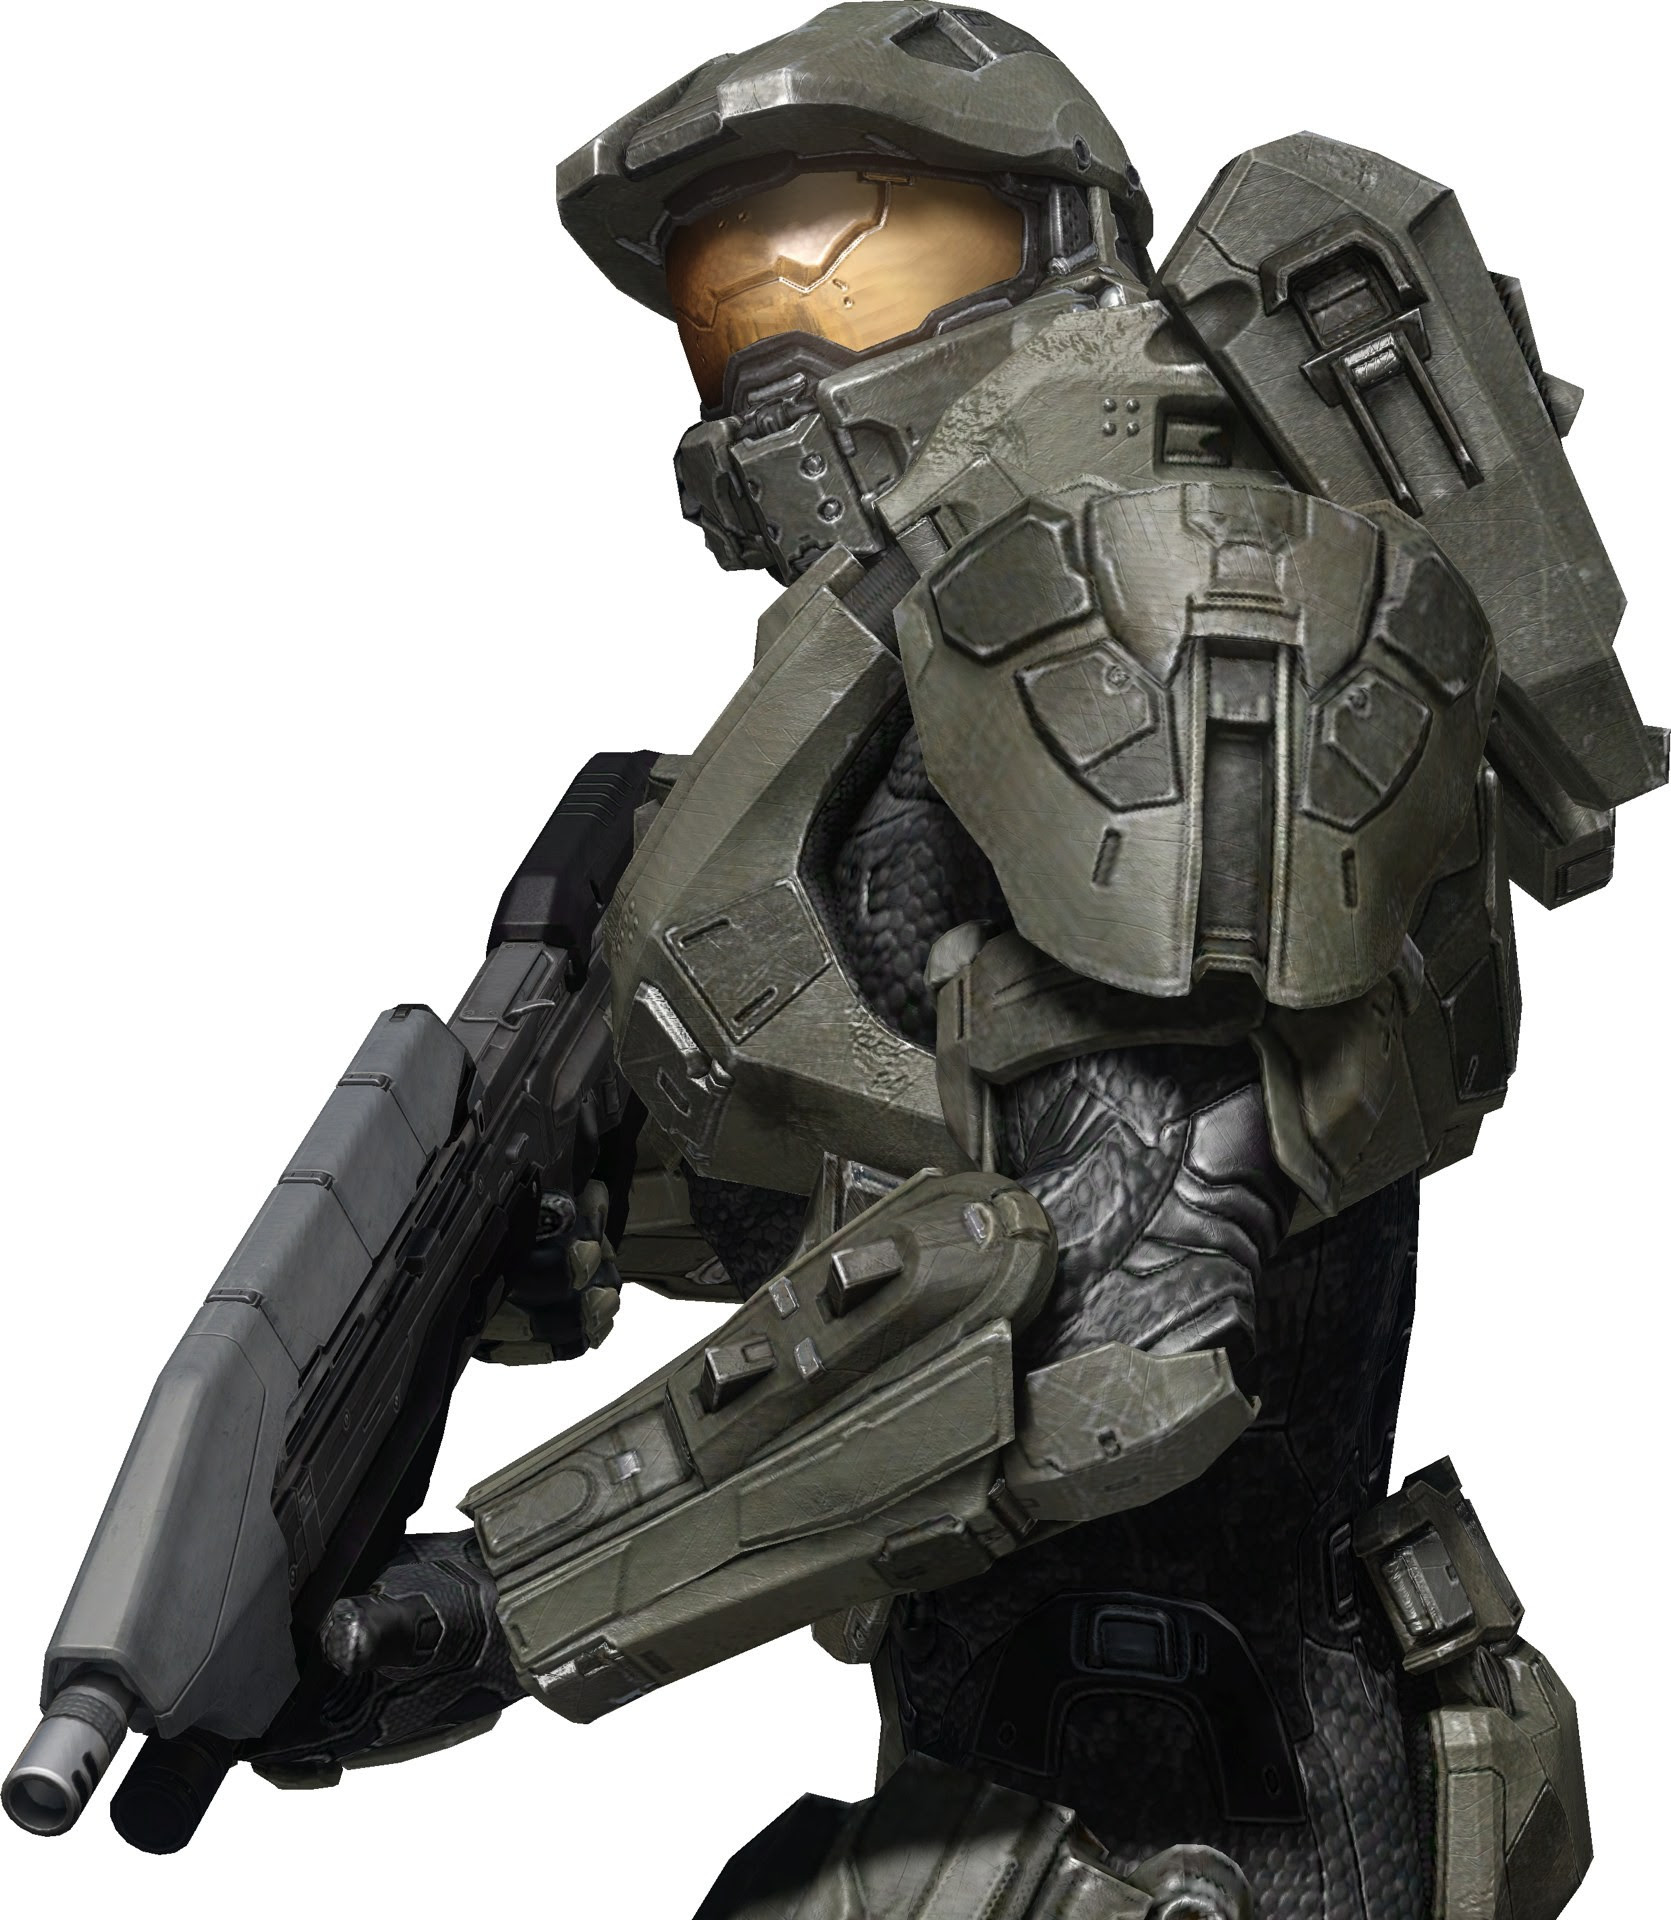 New Halo 4 concept art includes redesigned Grunts ...